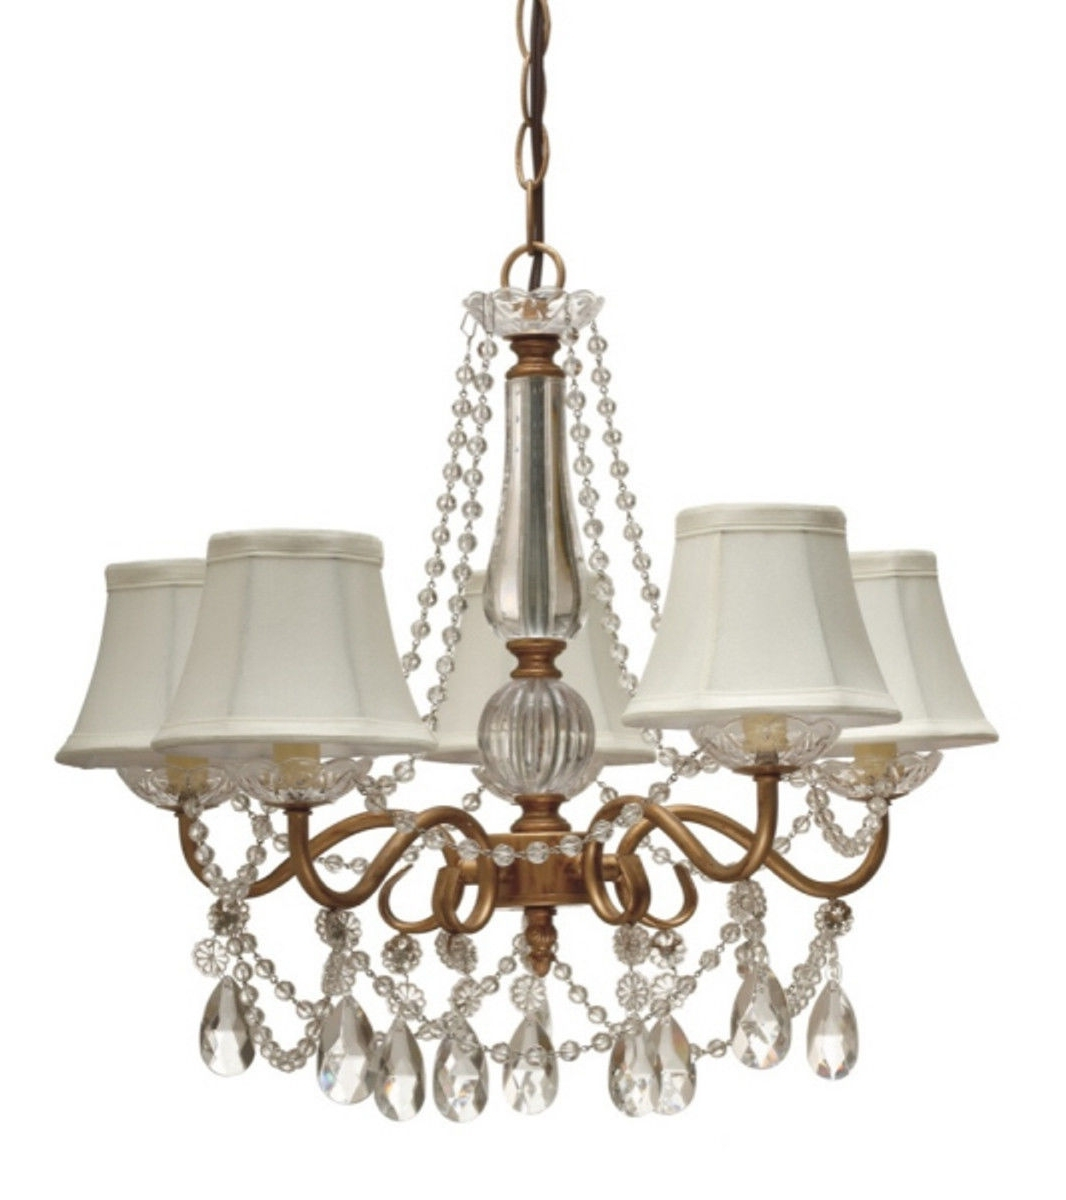 Gold Arm & Crystals Chandelier 5 Silk Shades (Gallery 2 of 15)